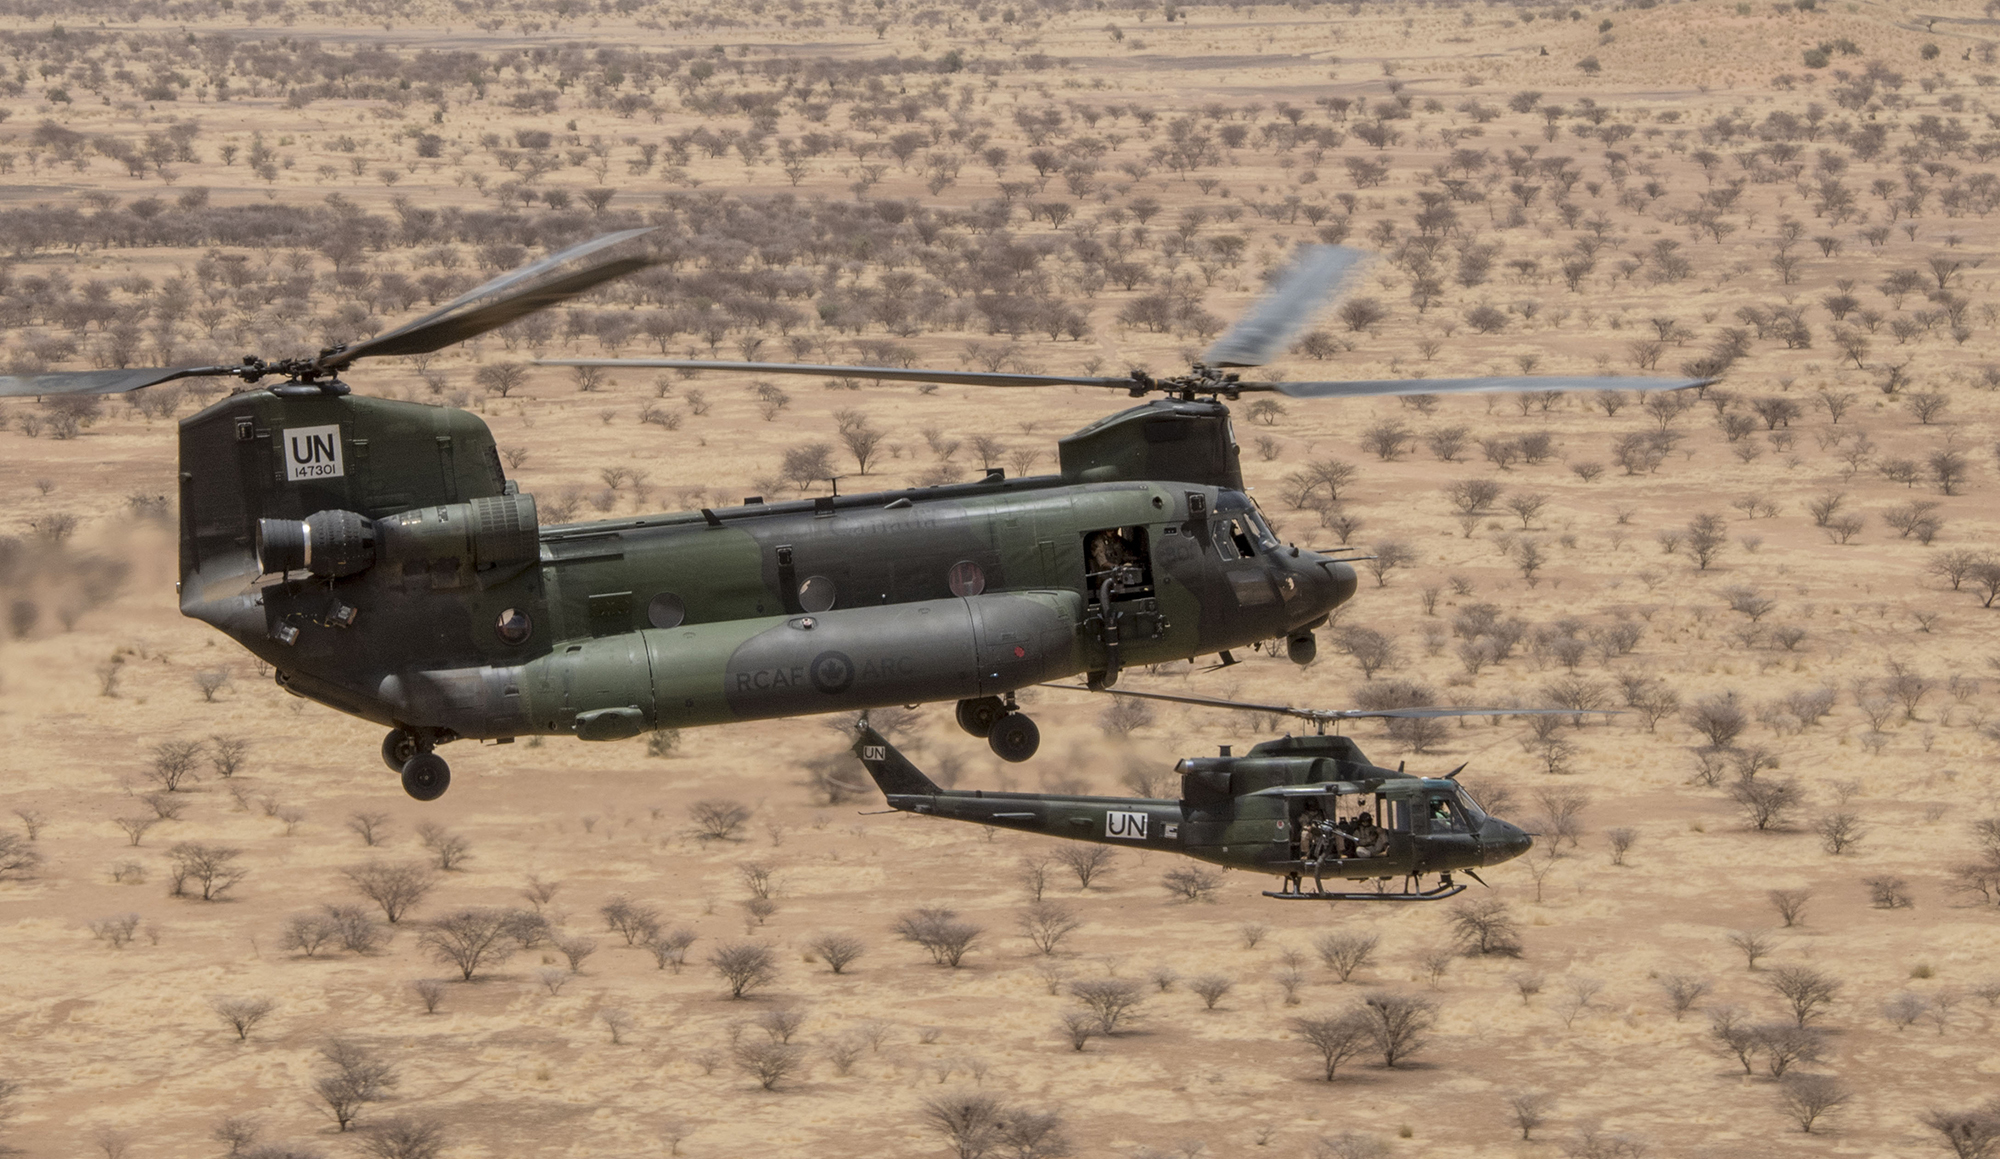 A CH-146 Griffon helicopter and a CH-147F Chinook helicopter fly in formation following an aeromedical evacuation exercise in June 2019 during Operation Presence. PHOTO: Corporal François Charest, TM02-2019-0074-0037